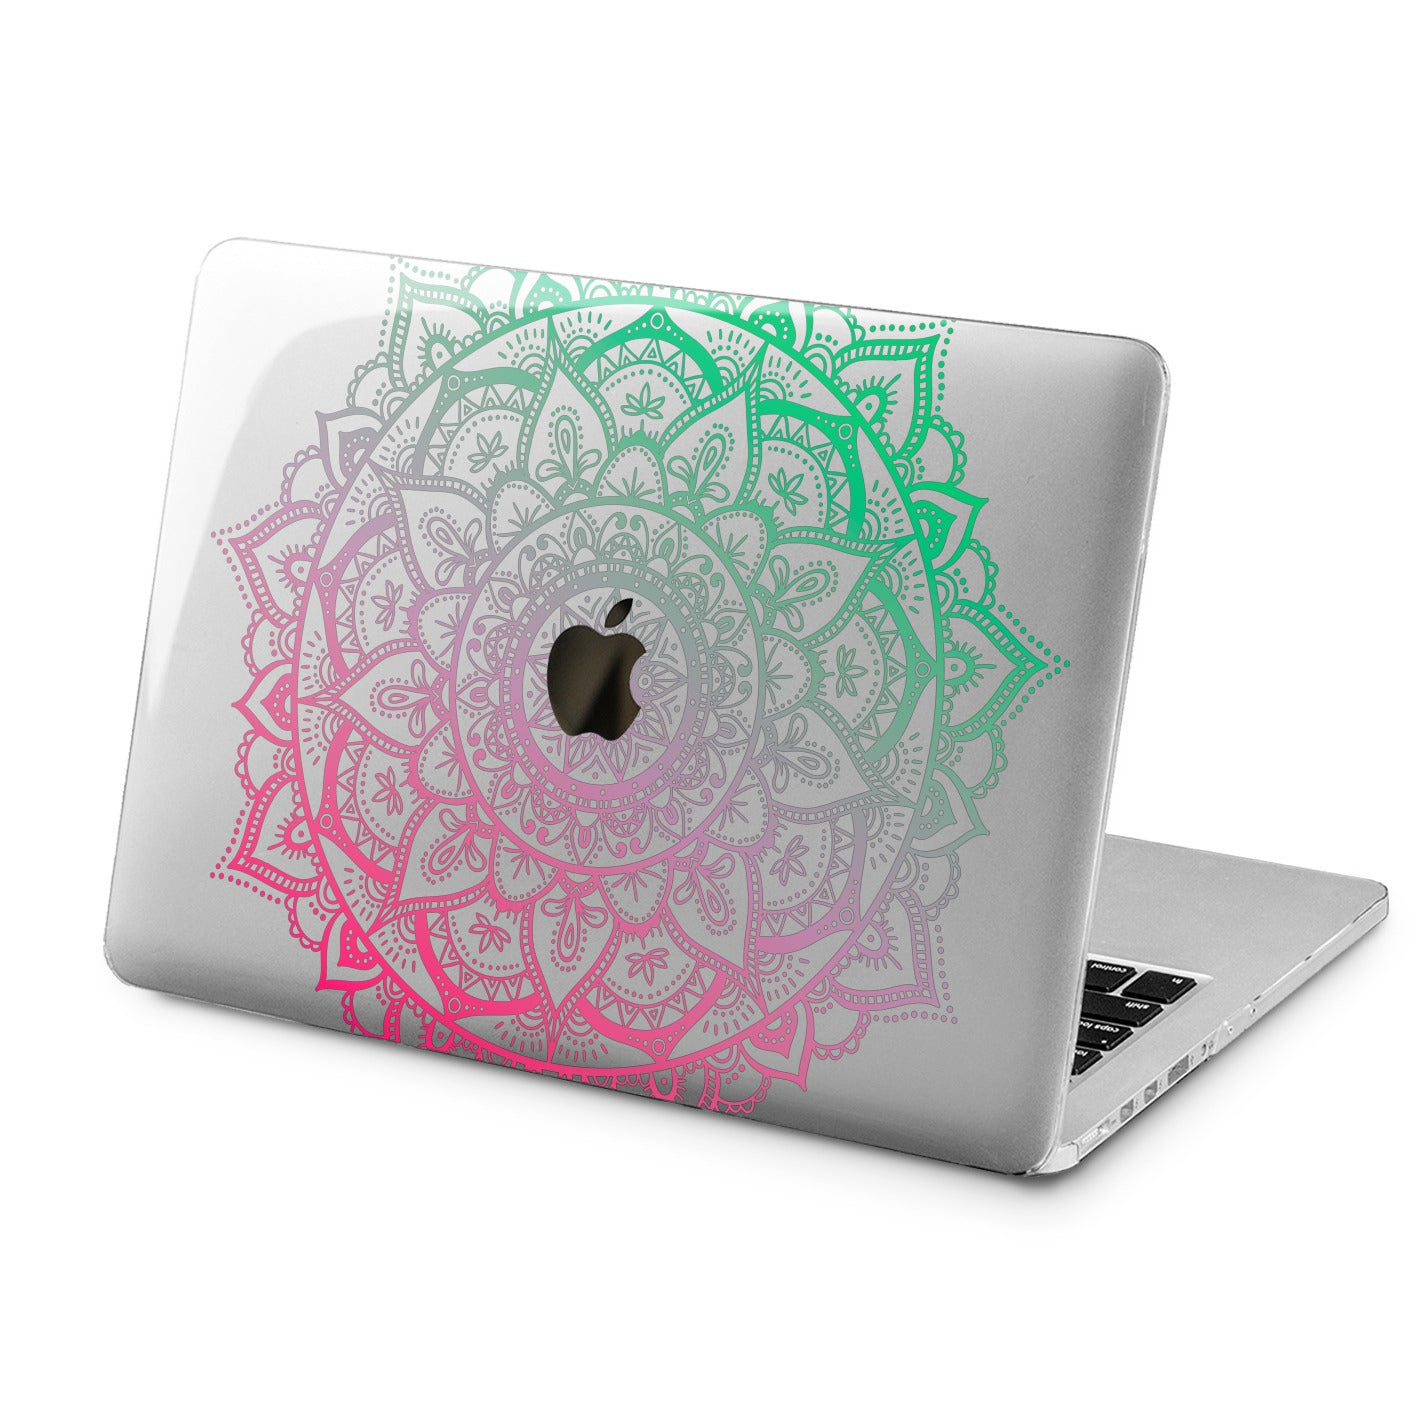 Lex Altern Lex Altern Special Mandala Case for your Laptop Apple Macbook.